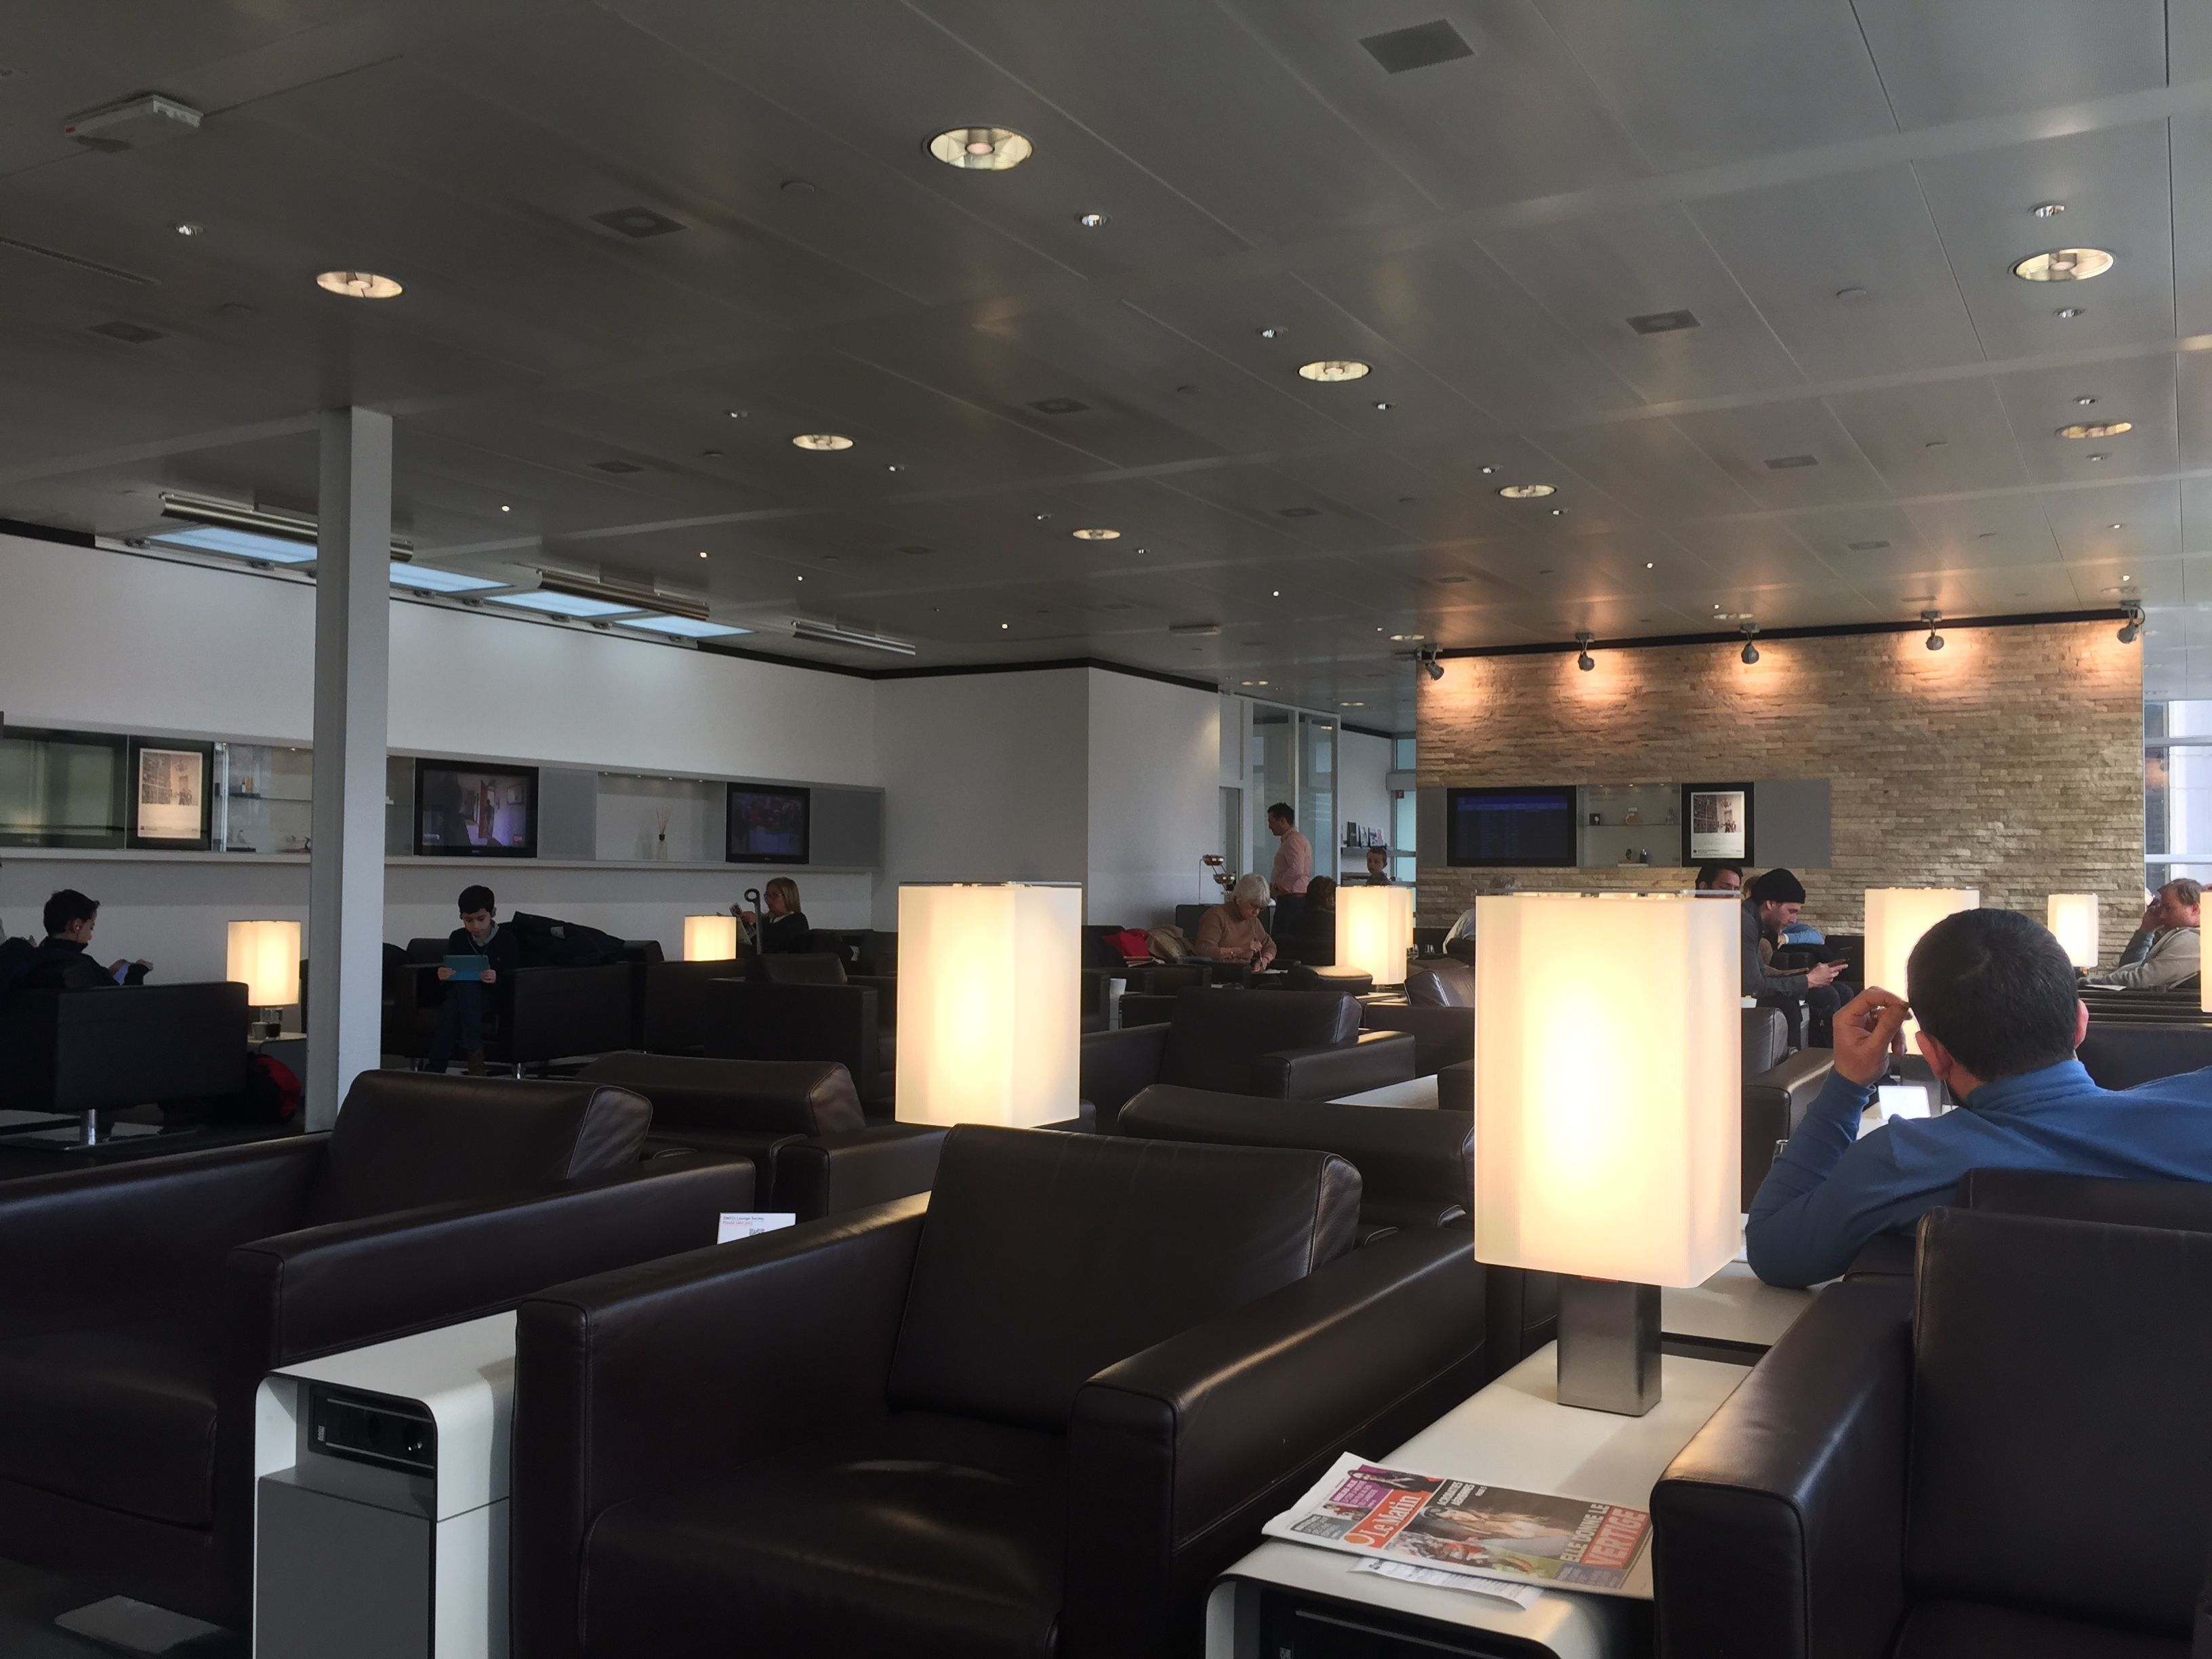 Image result for airport lounge Restaurant interior